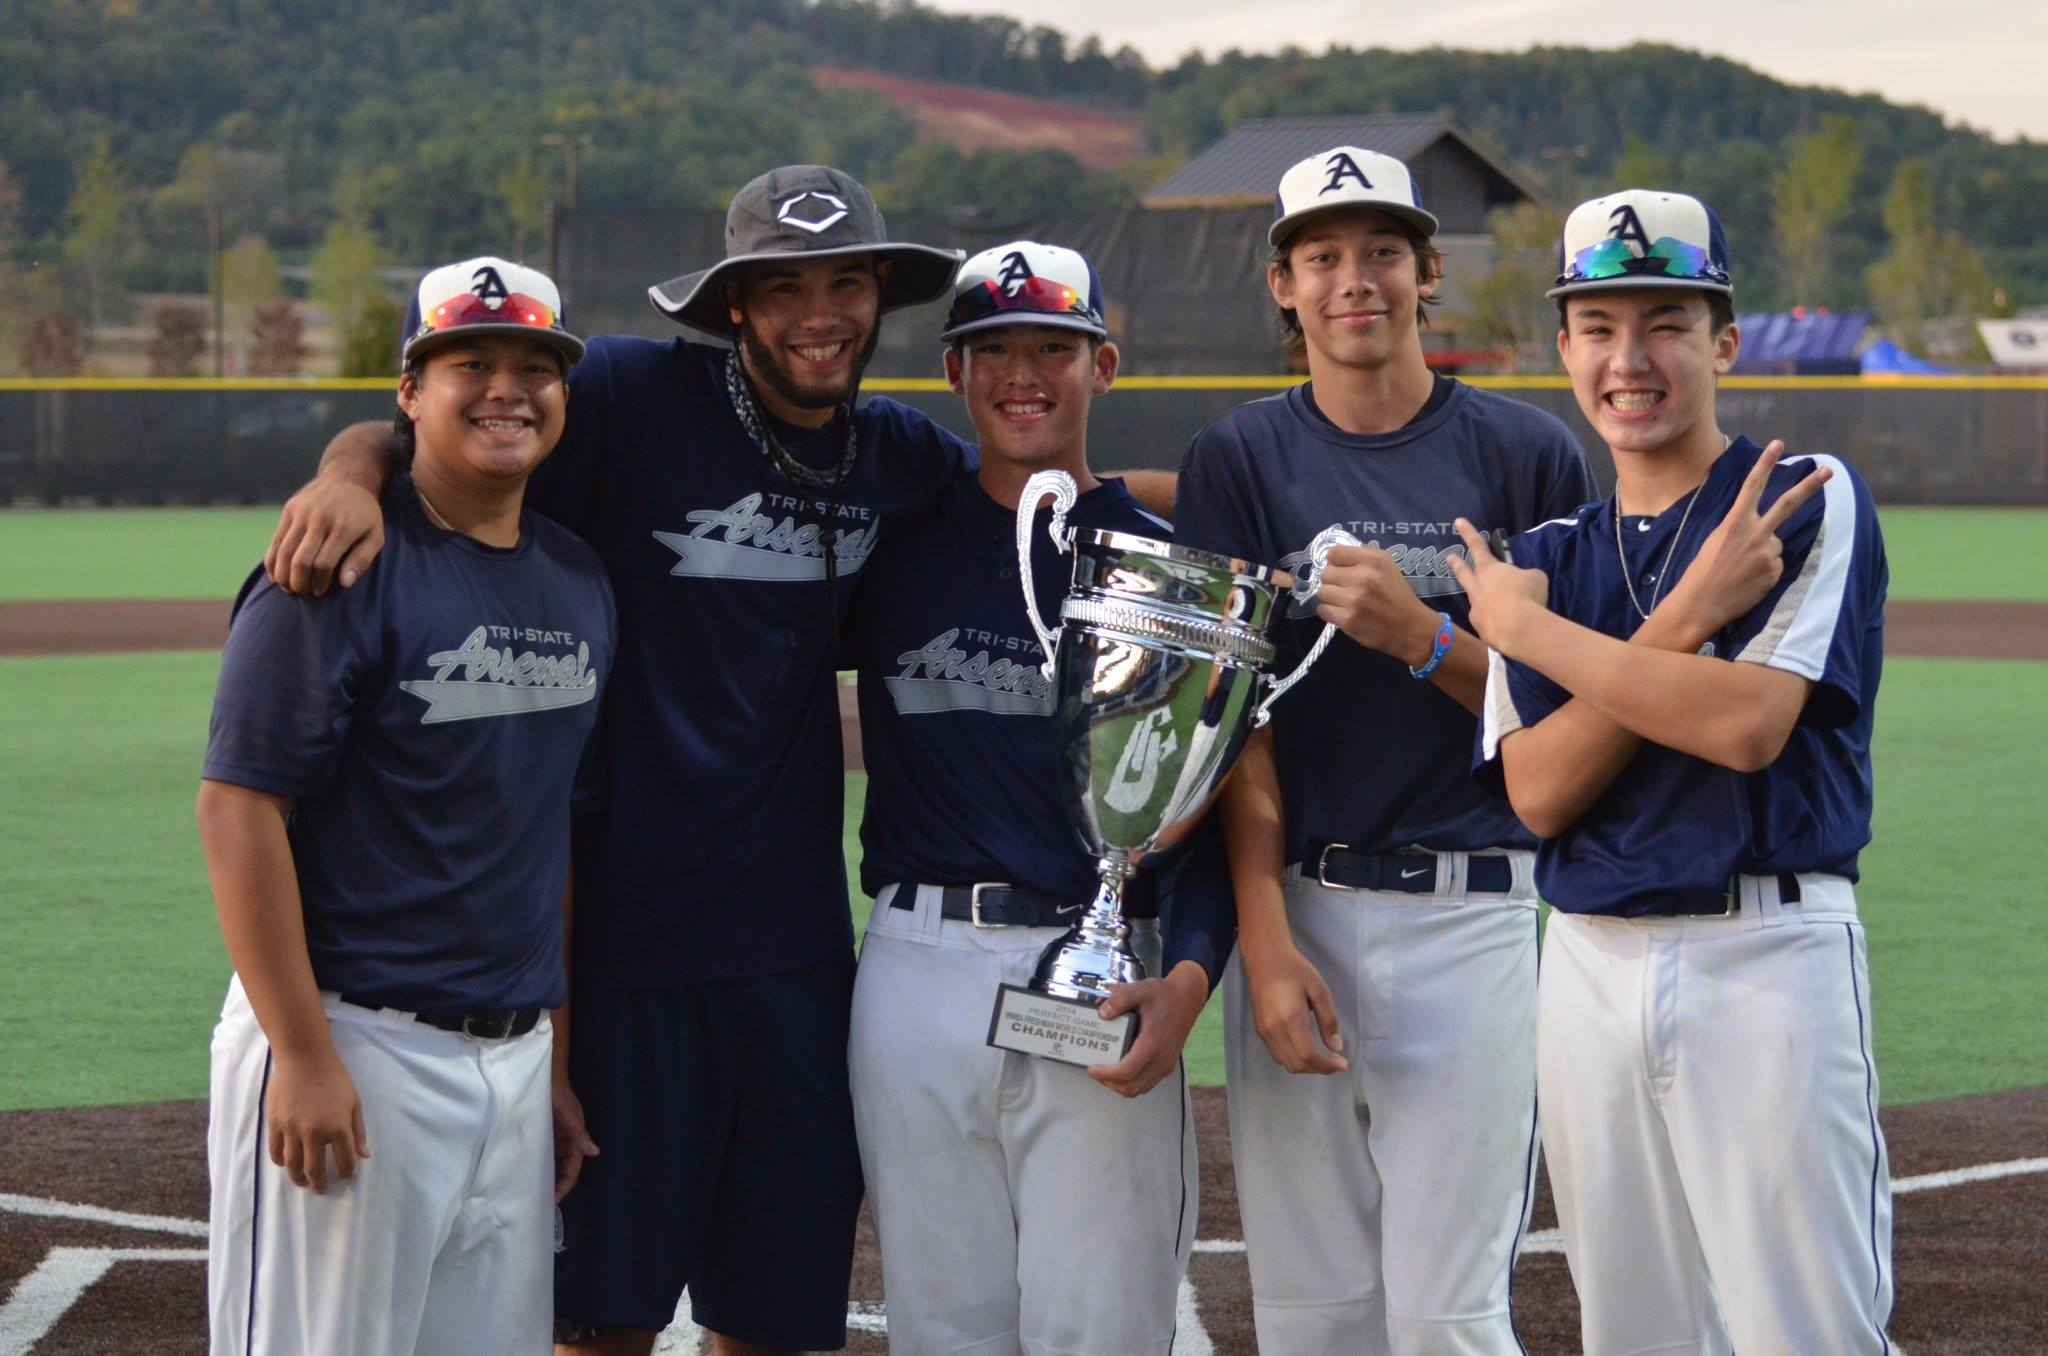 Ryan (far left) with his Tri-State Arsenal teammates celebrating their championship